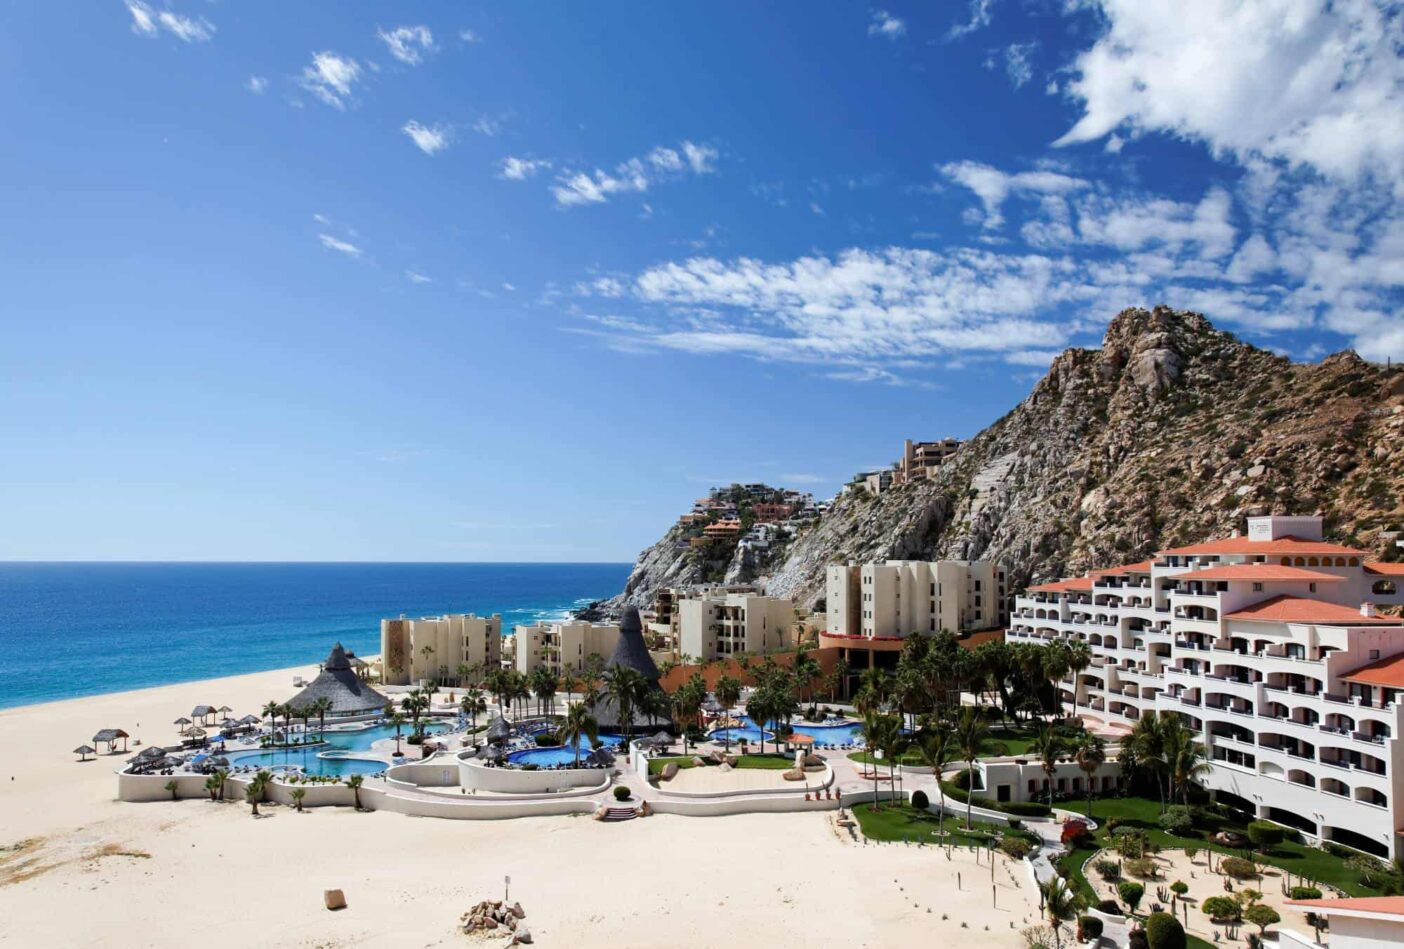 Renting or buying property in Mexico